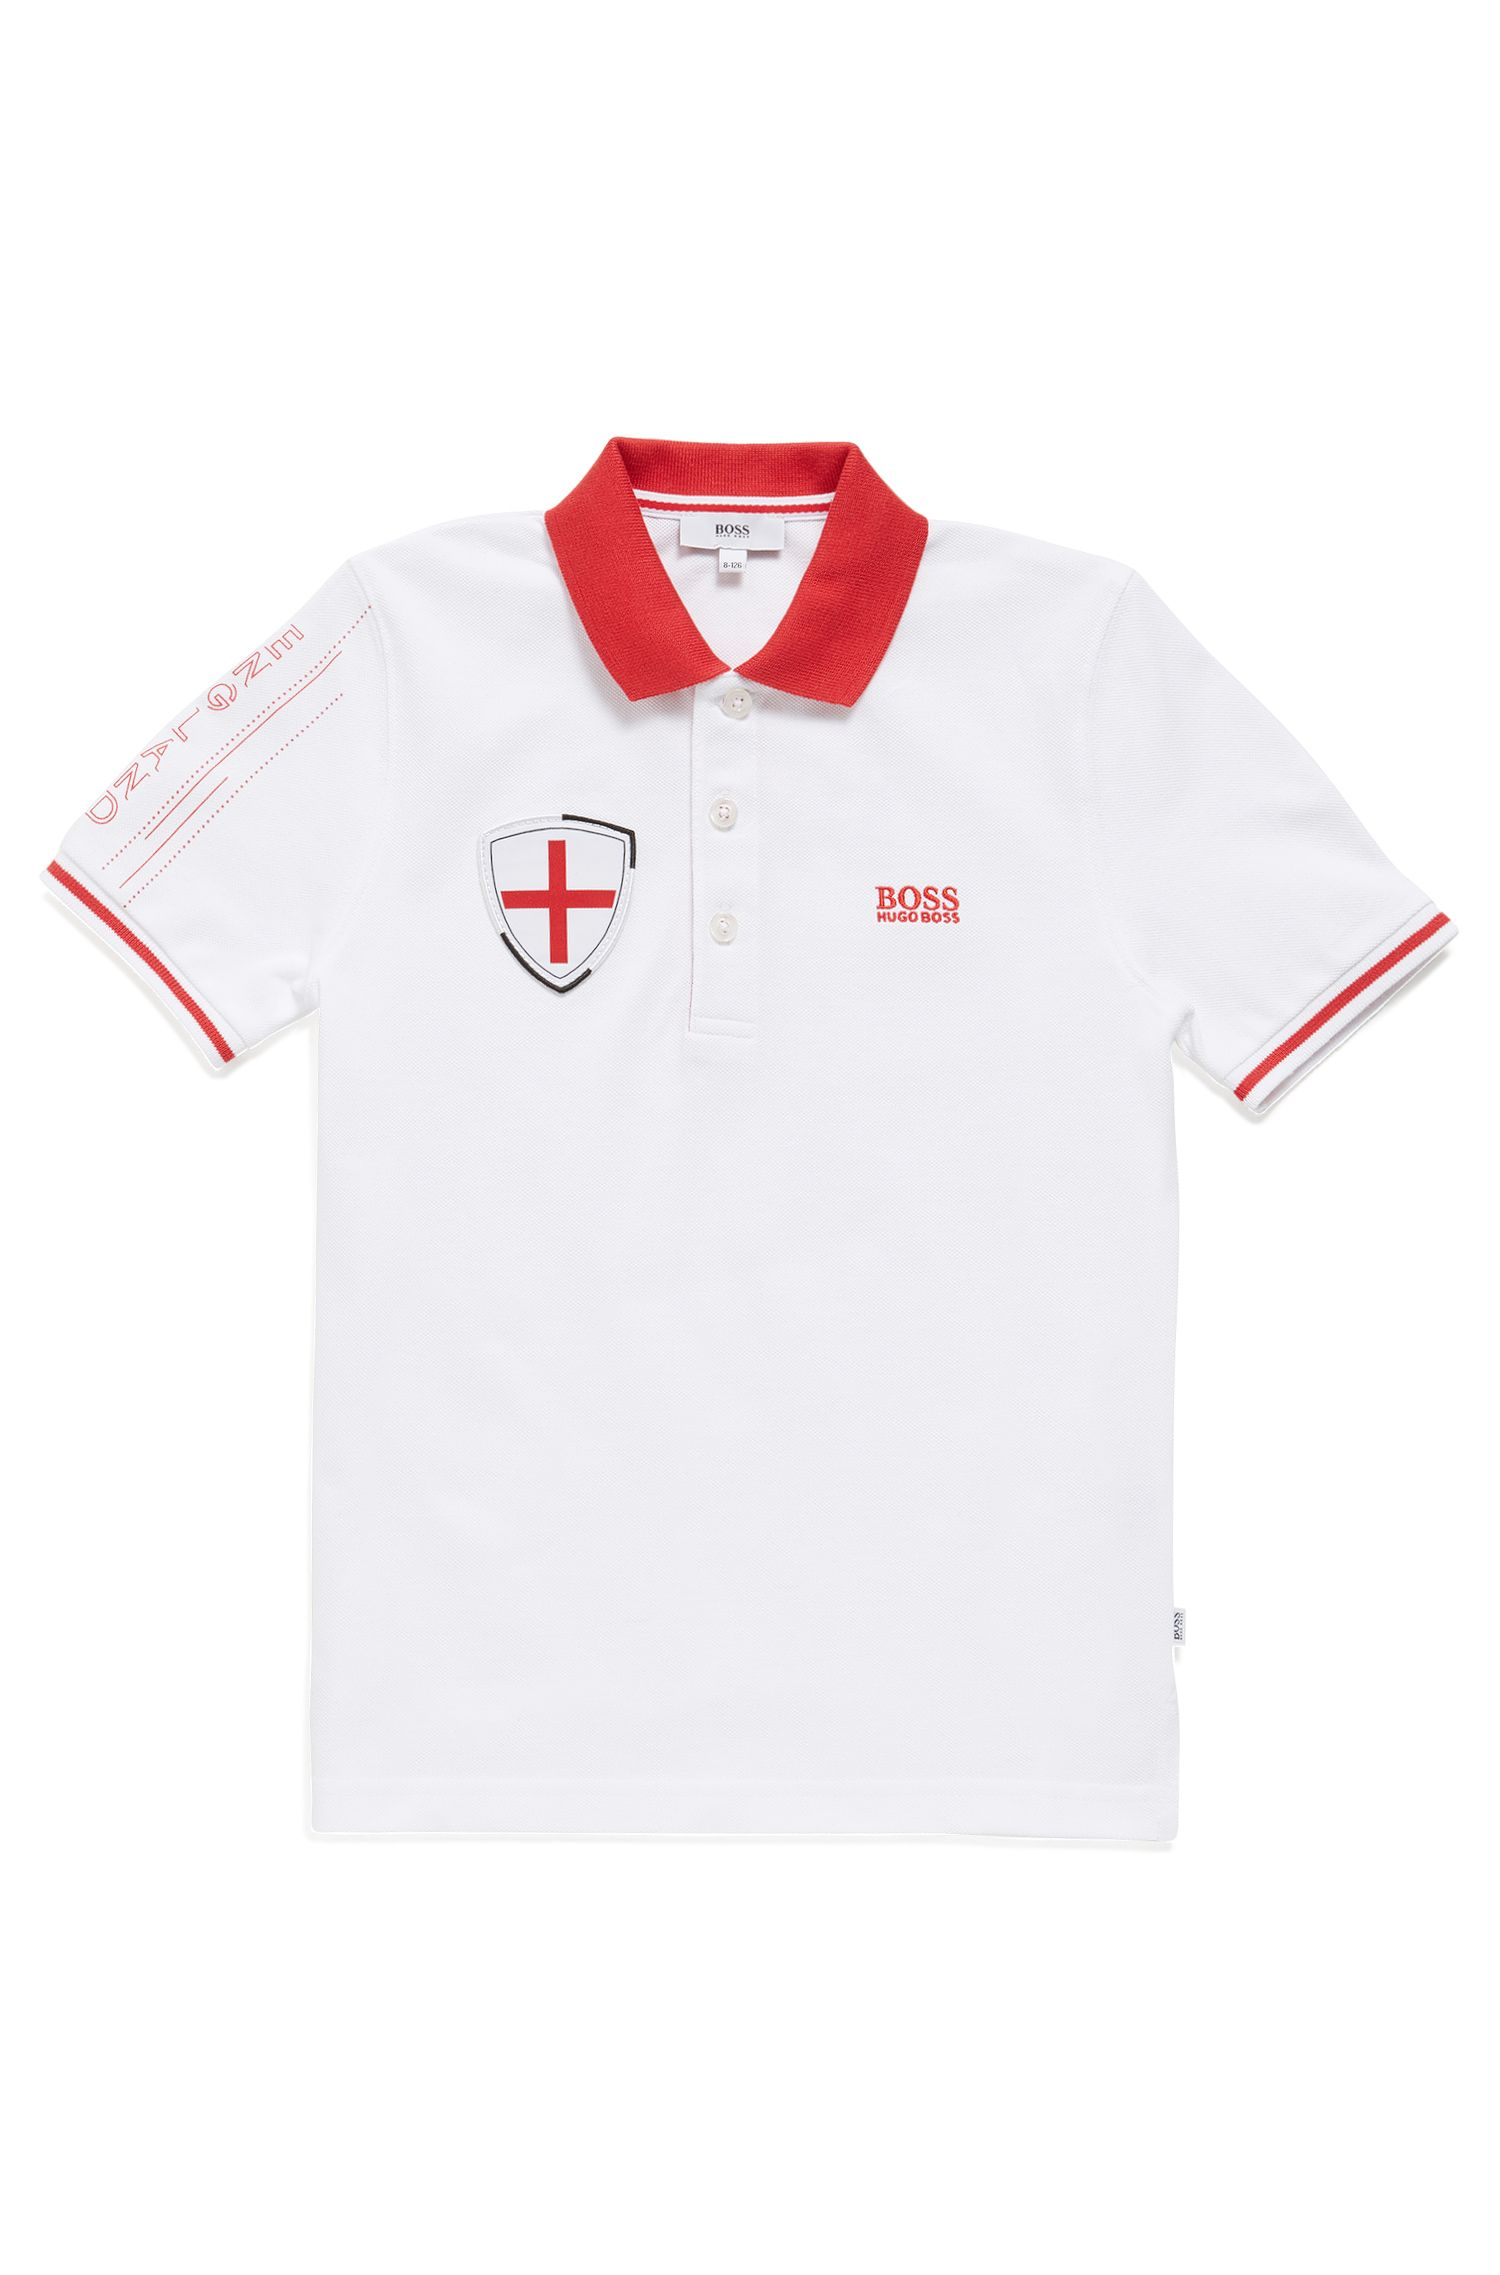 Kids' piqué polo shirt in England's team colours